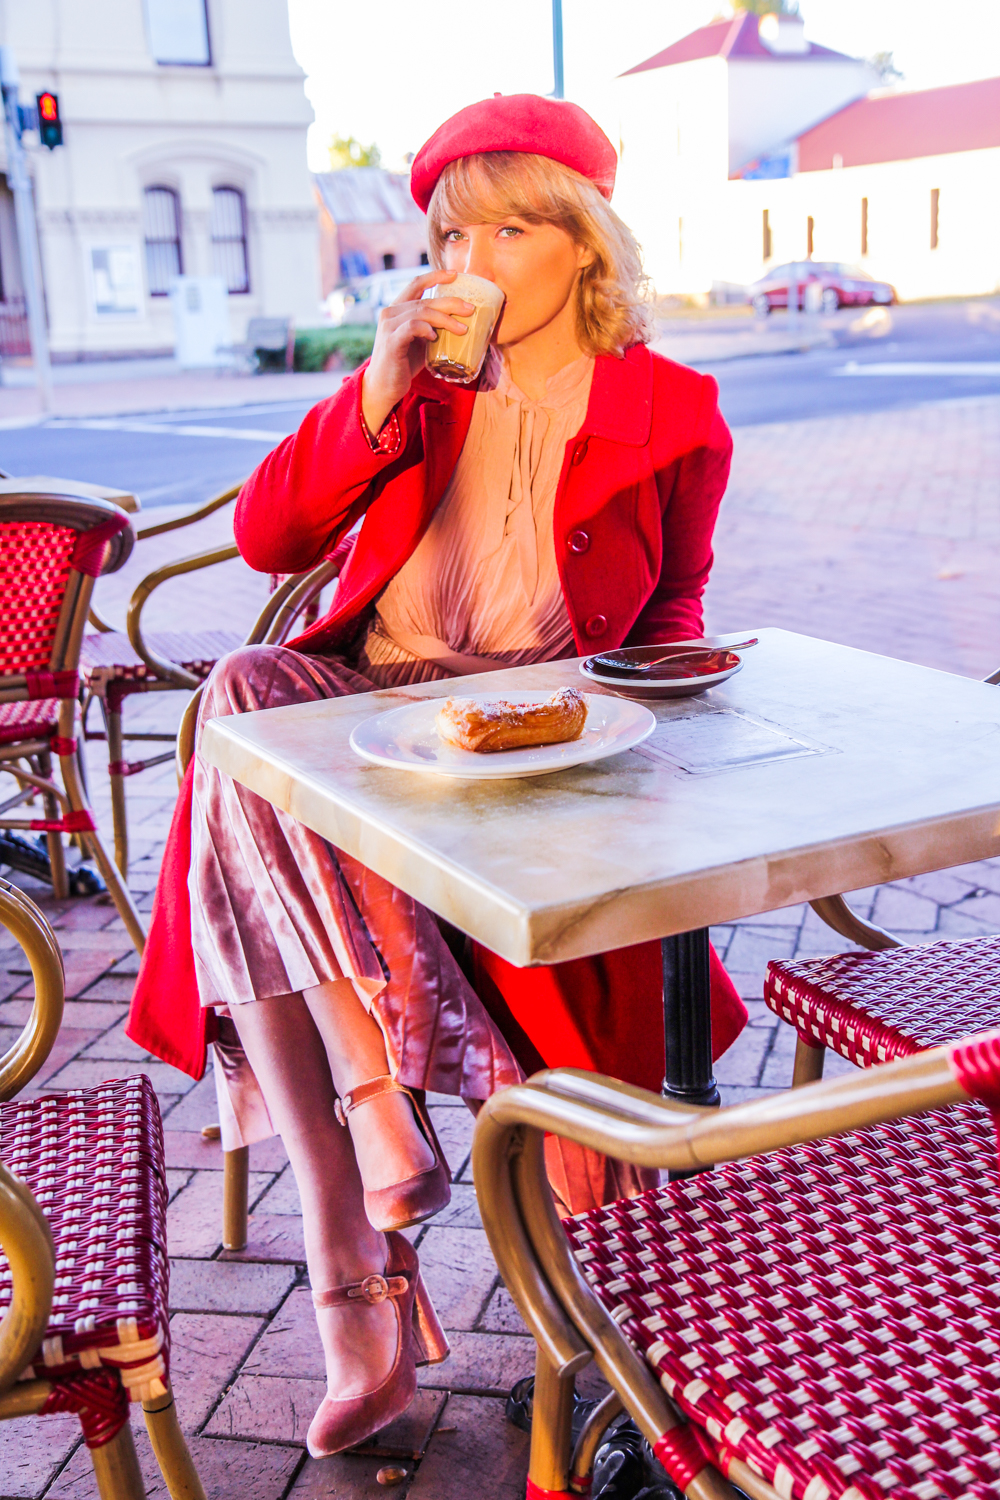 Liana of @findingfemme wears red and pink and sips on a chai at Le Peche Gourmand in Creswick